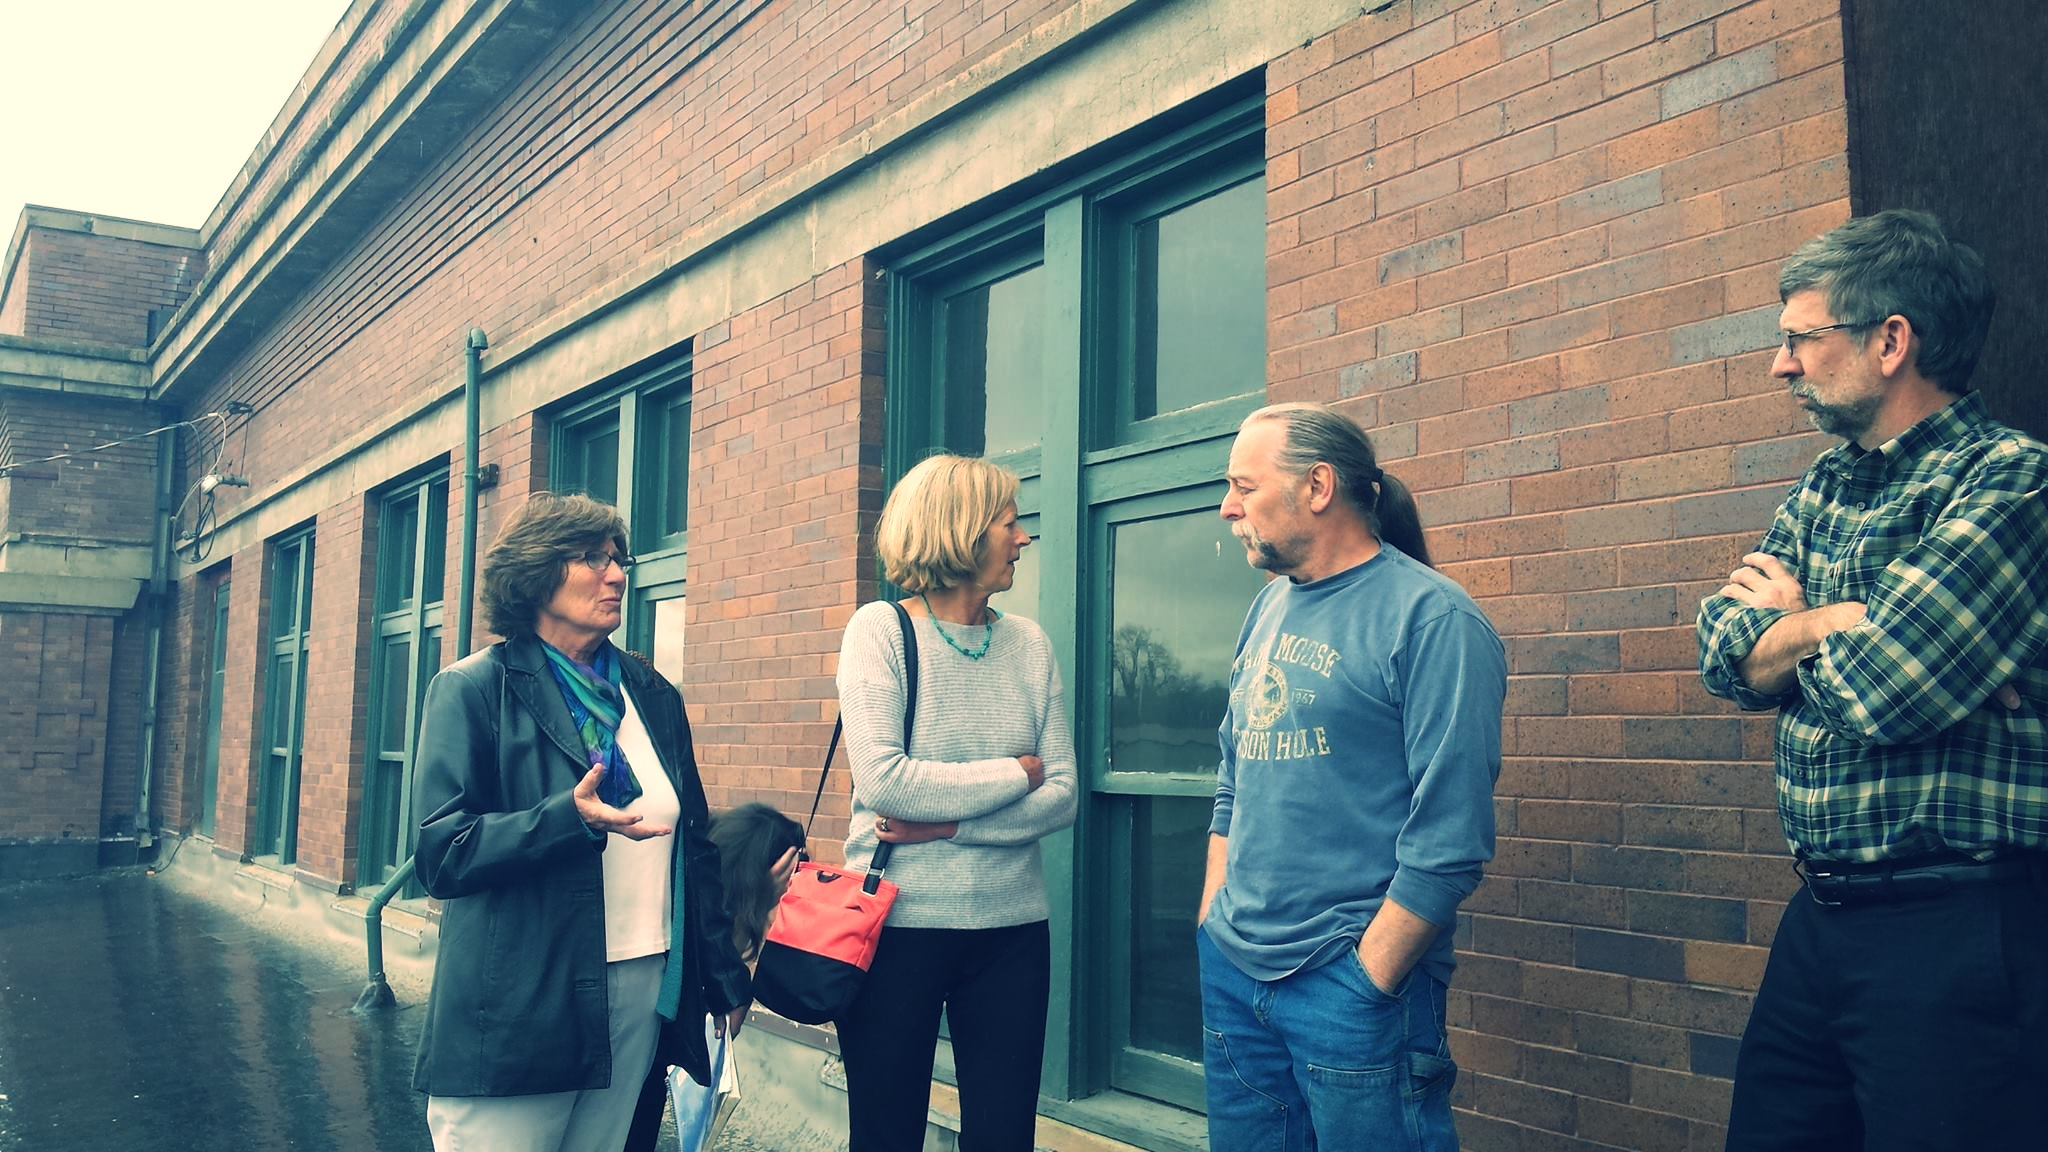 AHW board member Mary Humstone talks with participants at the  This Place Matters event in Sheridan, Wyoming.